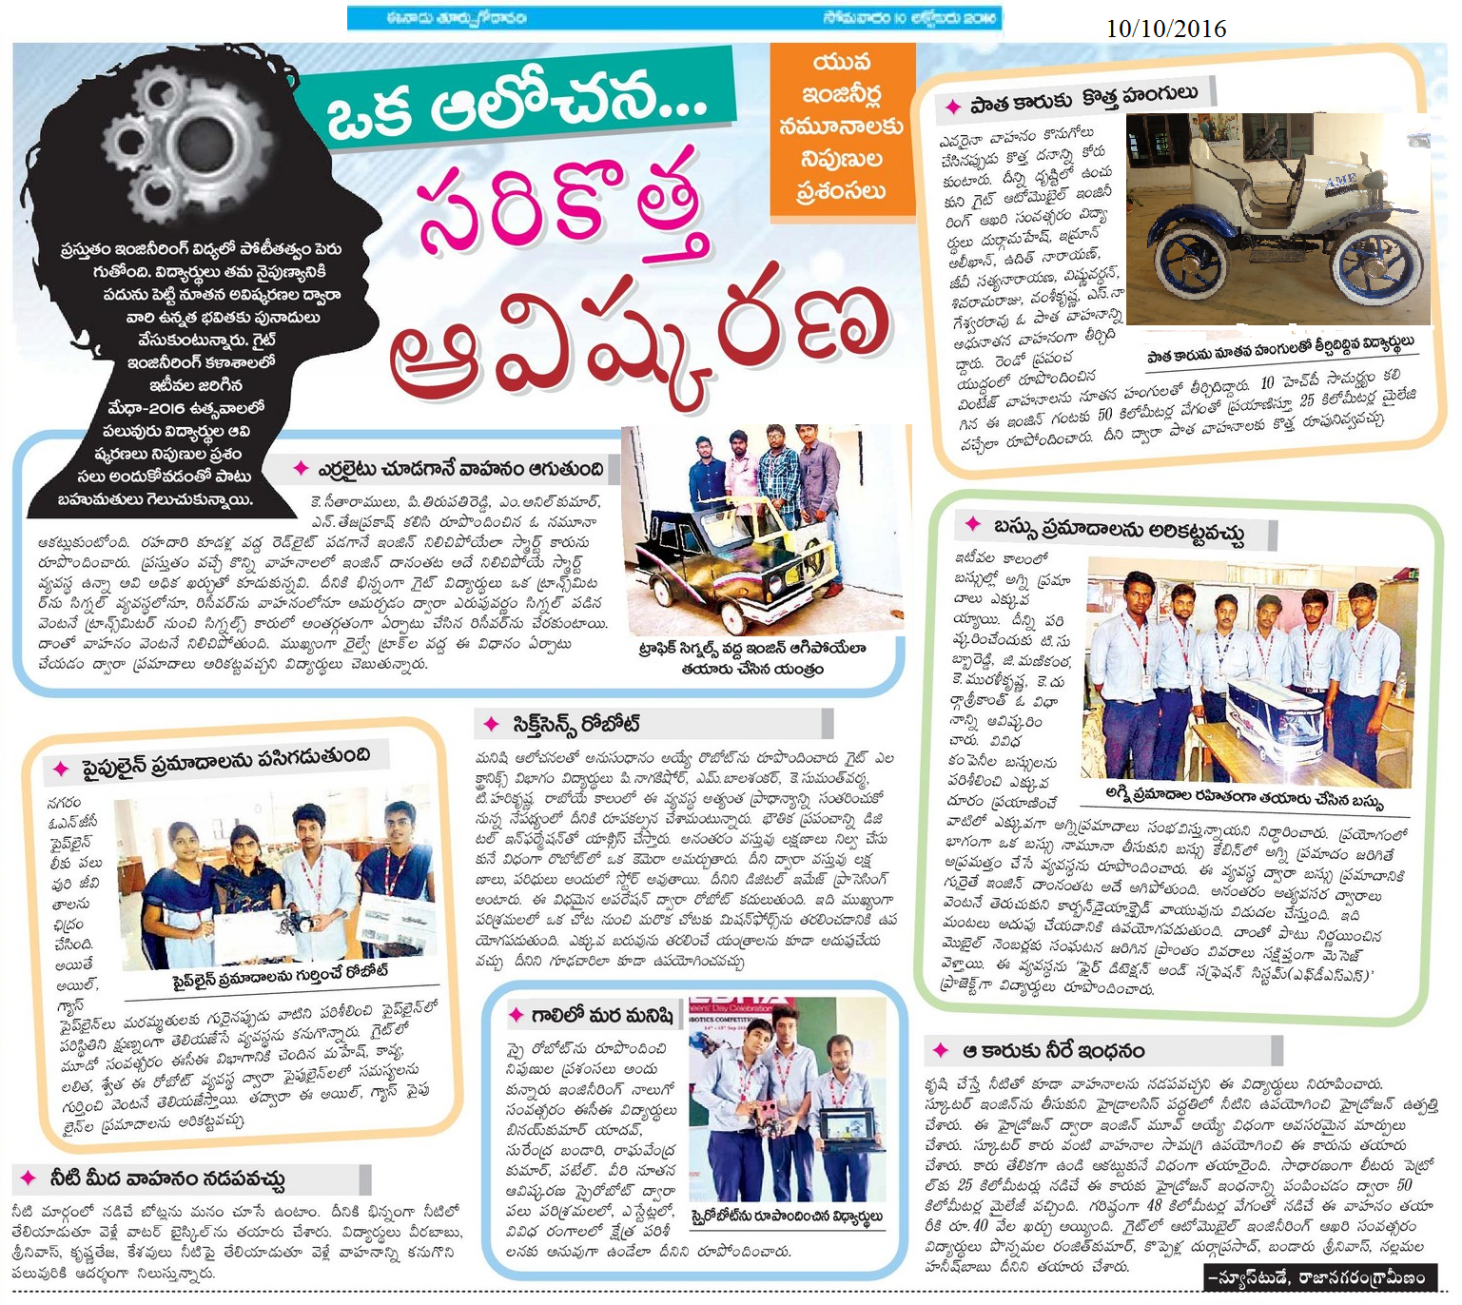 GIET - Engineering Colleges With Best Placements In Andhra